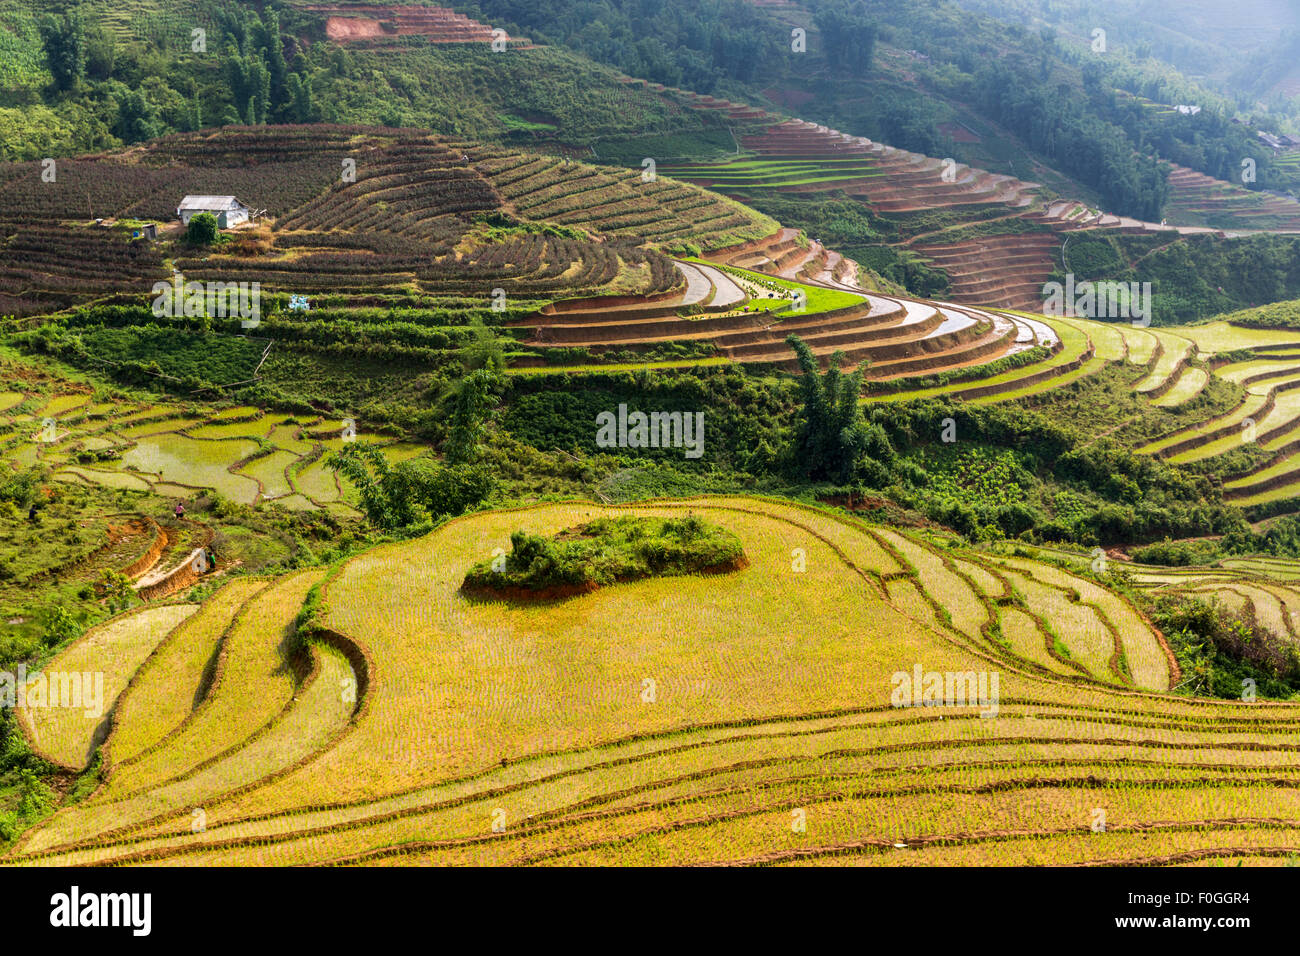 Terraced rice paddies in broken sunshine from above near Sa Pa northern Vietnam. Farmers are visible in the background. - Stock Image